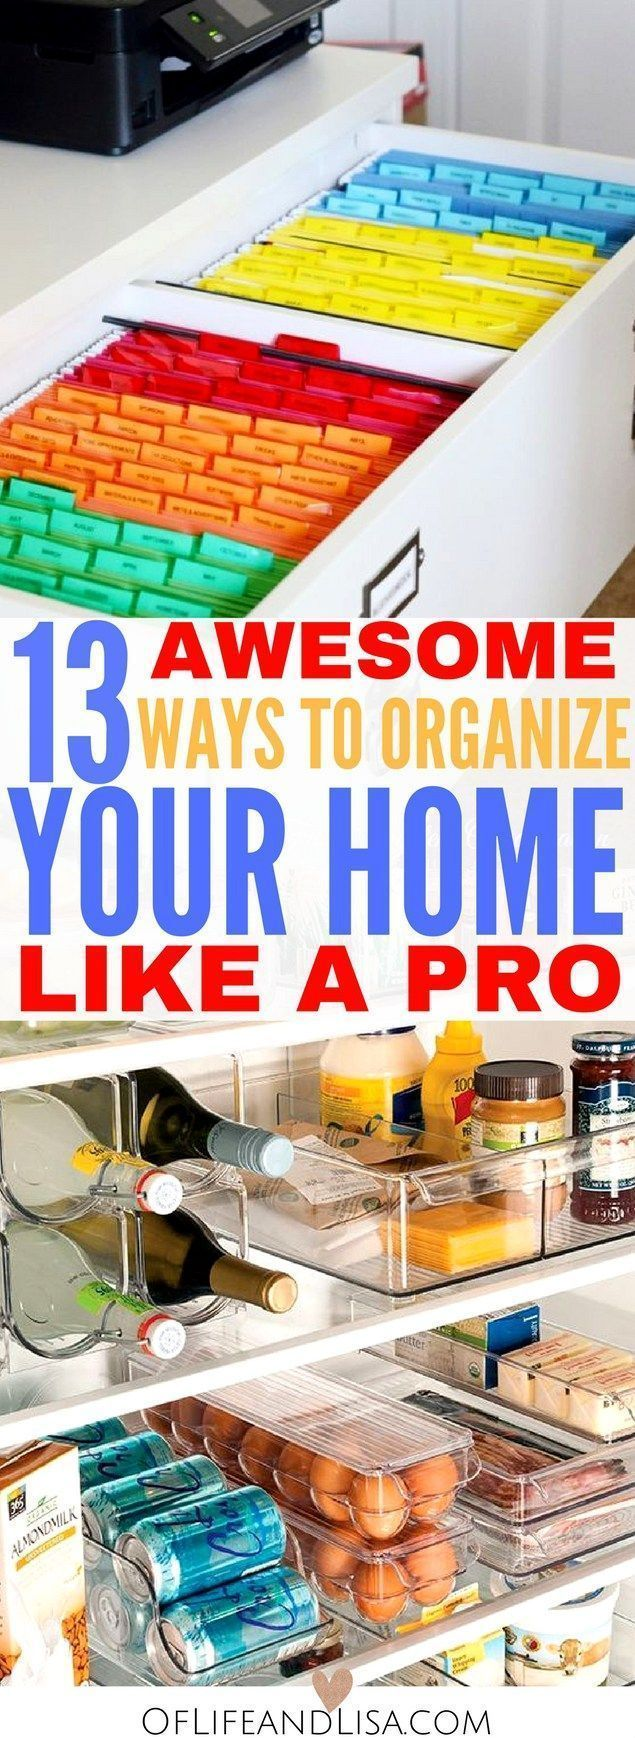 Learn how to organize your home like a professional. Check out these mesmerizing examples of perfectly organized spaces.